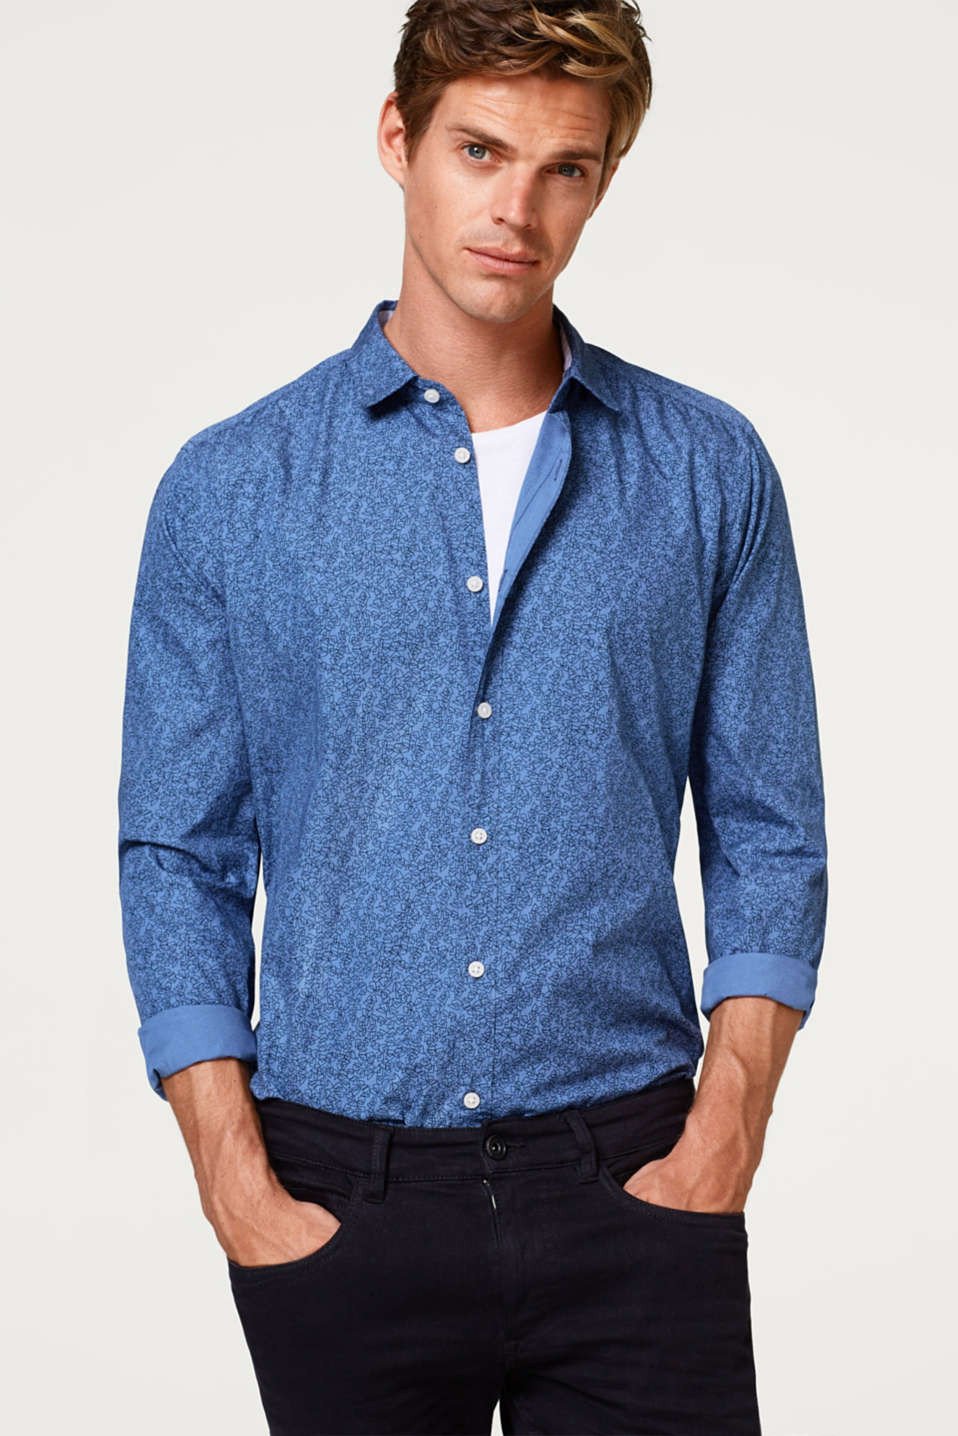 Esprit - Minimalist print shirt in 100% cotton